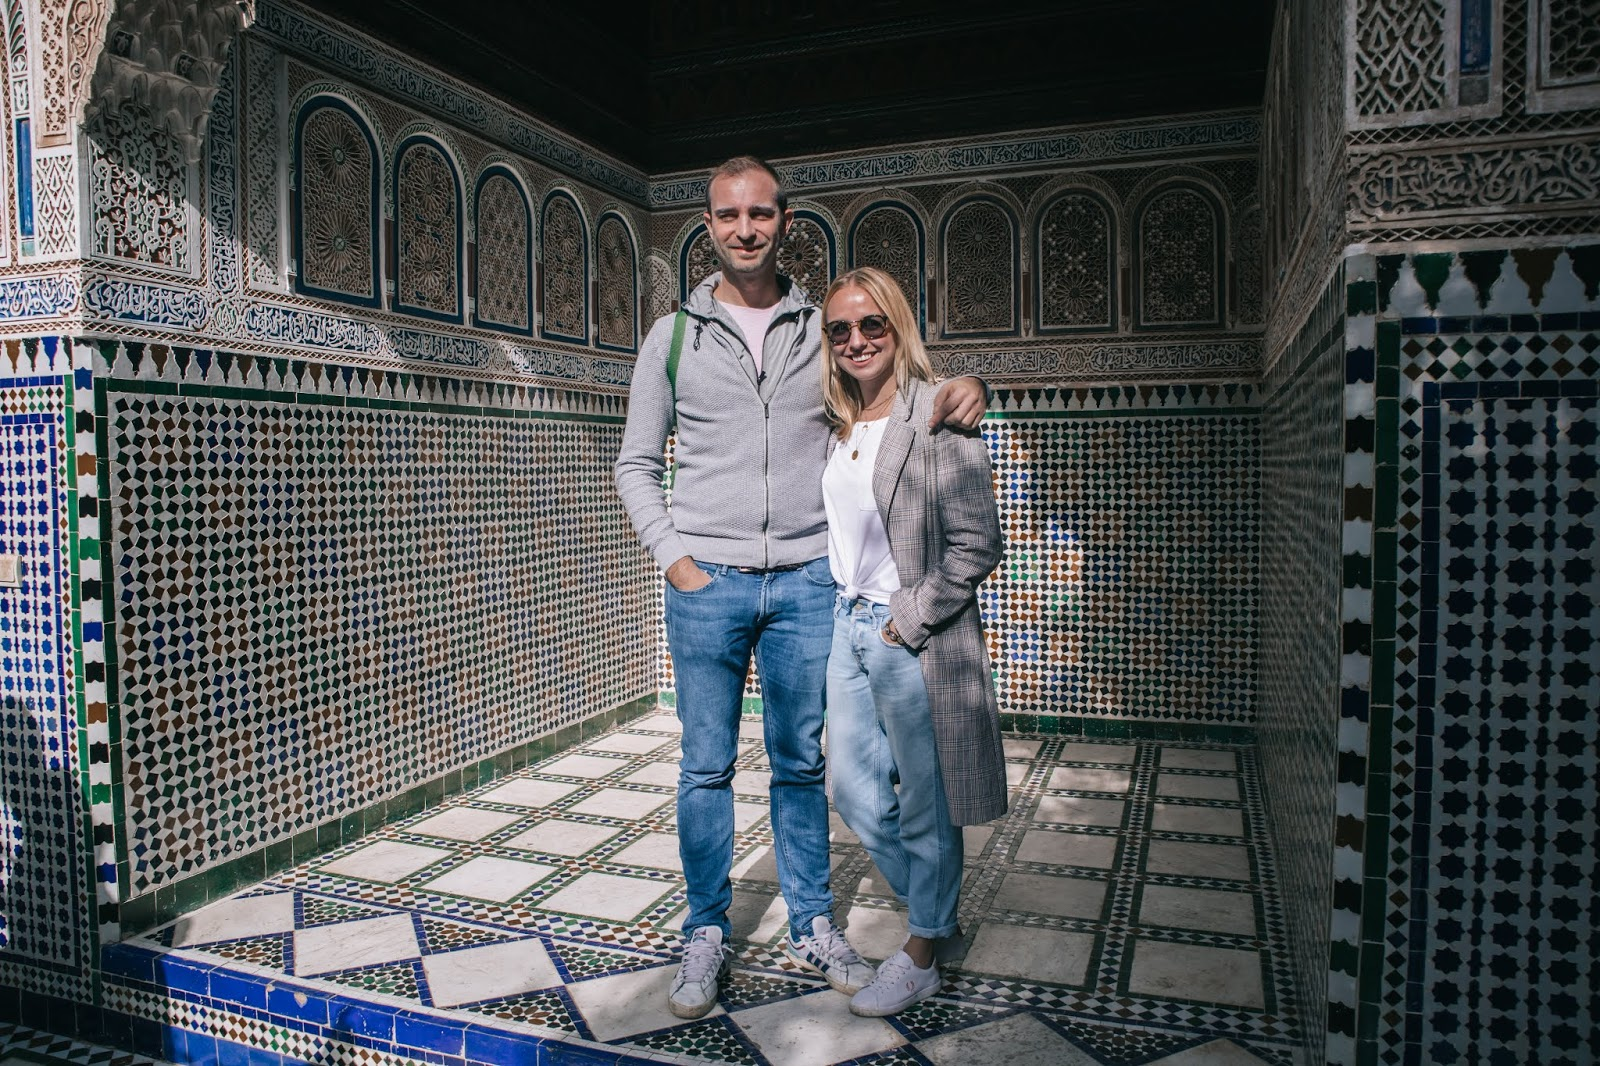 Suz and the Sun, Suz and the Sun travel, Marrakesh 2018, Marrakesh travel, Suz and the Sun style, Bahia Palace